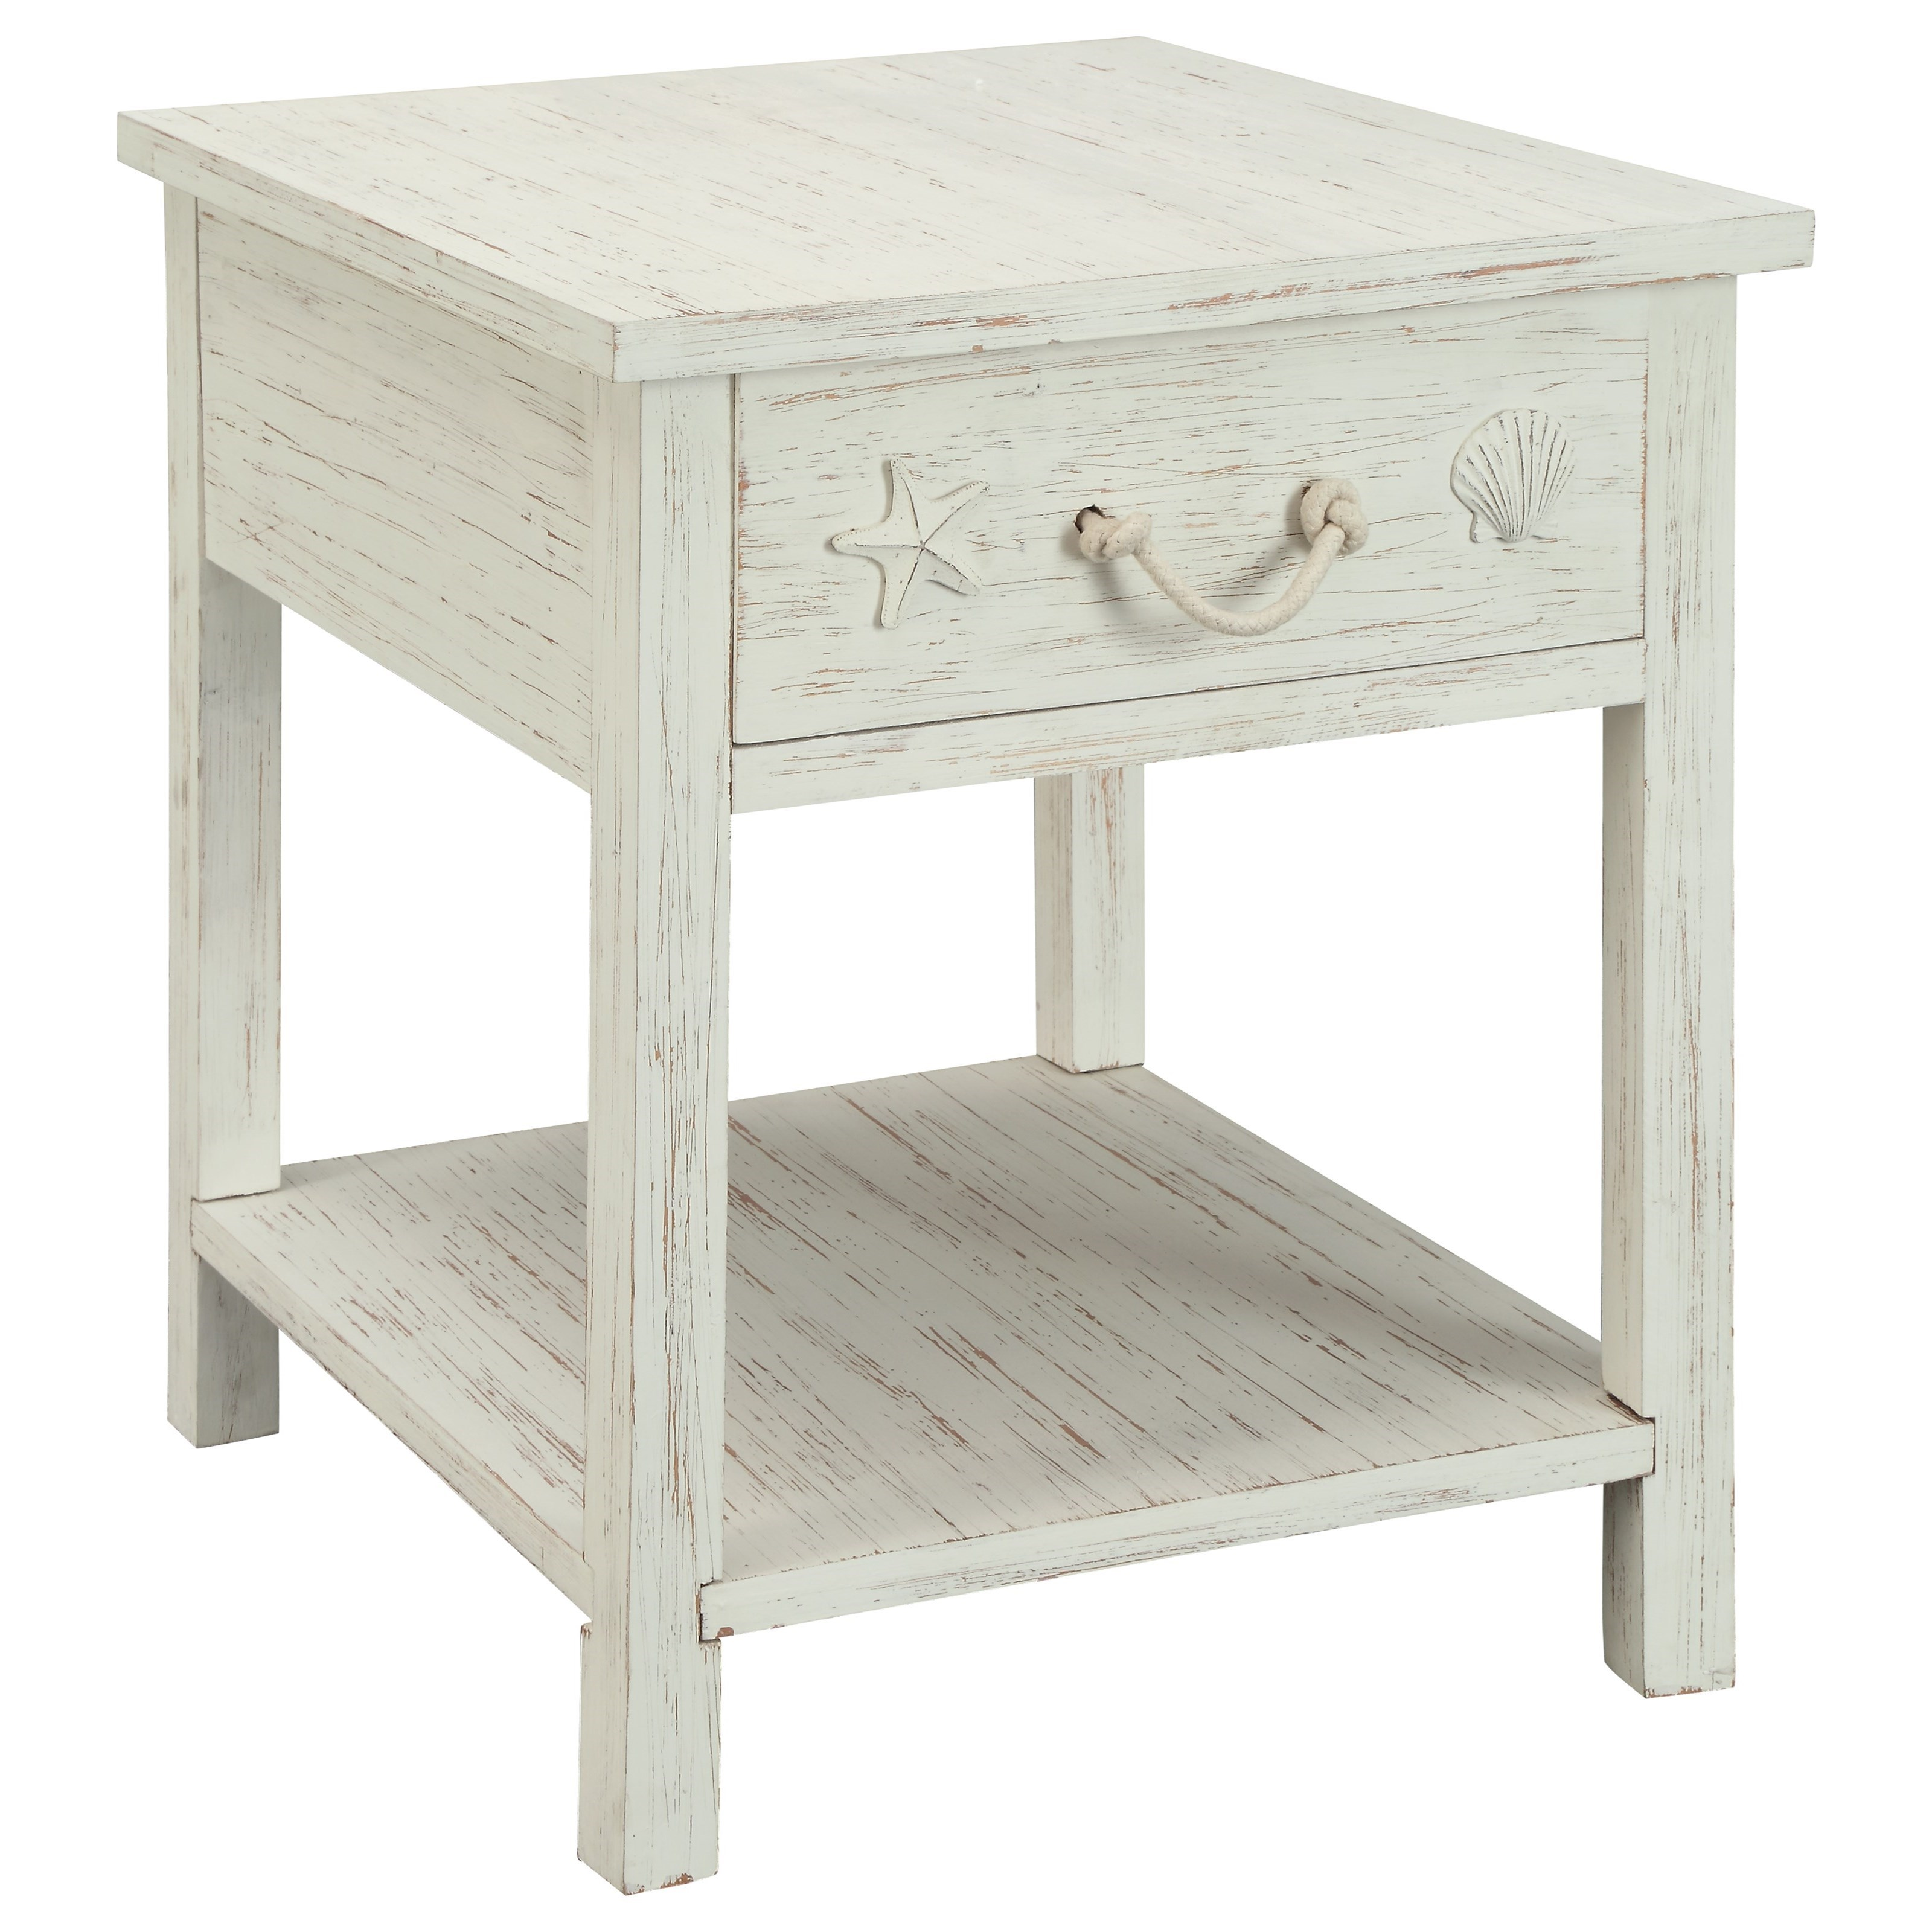 Sanibel Sanibel One Drawer End Table by Coast to Coast Imports at Bullard Furniture